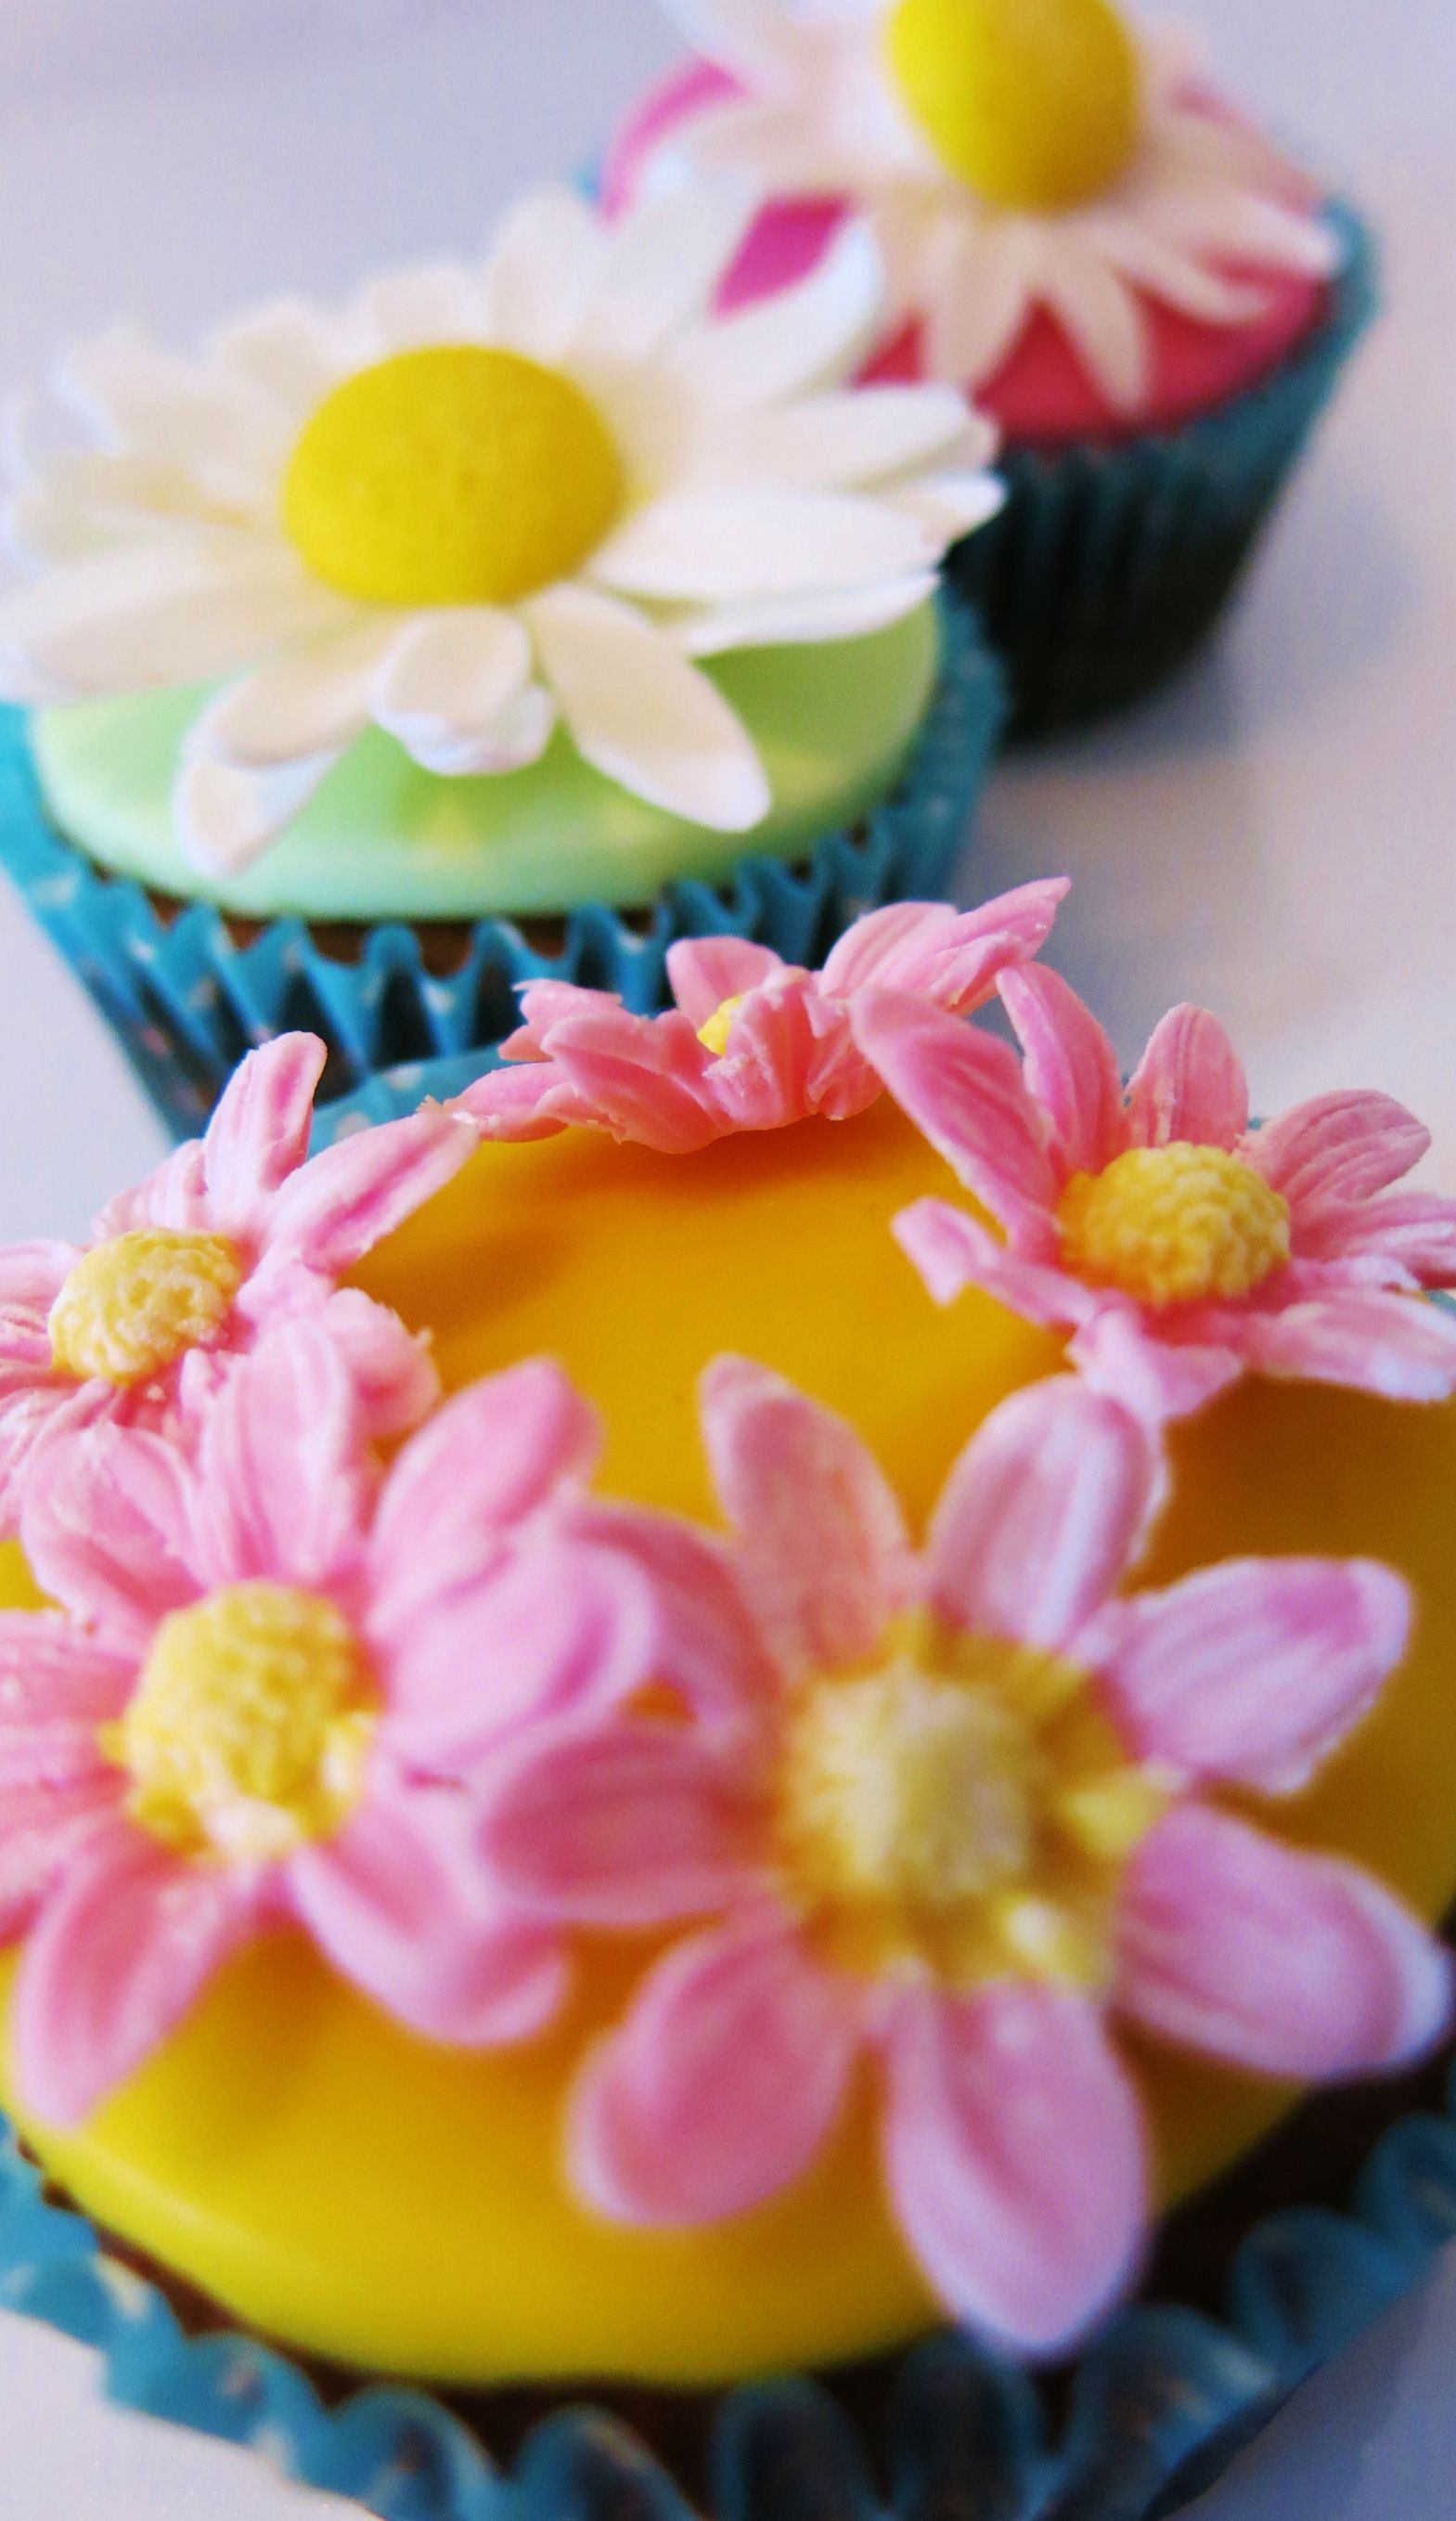 baking daisies summer 2014 cupcake collection #bakingdaisies #cupcakes